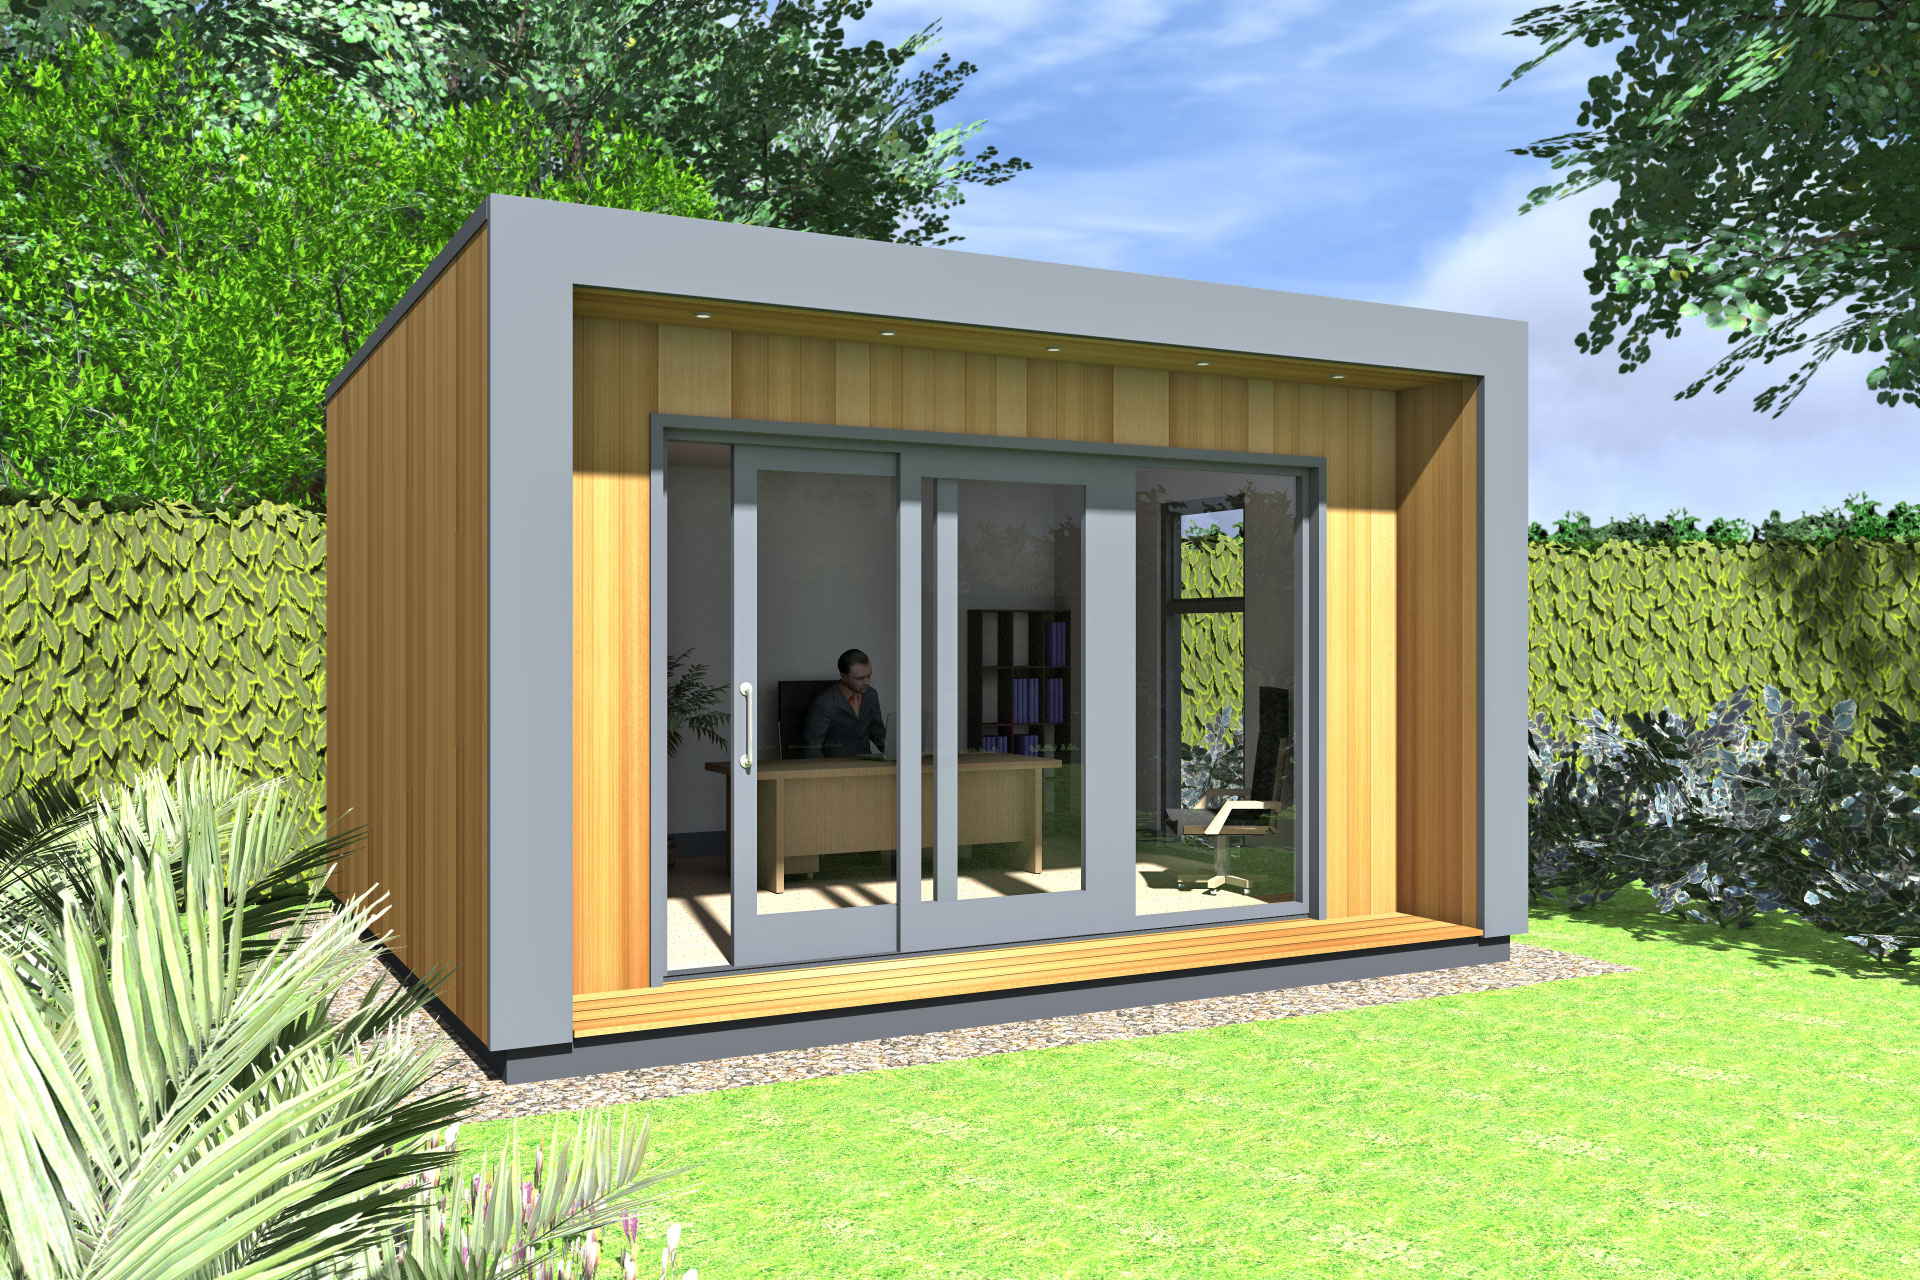 Office Pods Ideas Gallery Garden Office Ideas Gallery